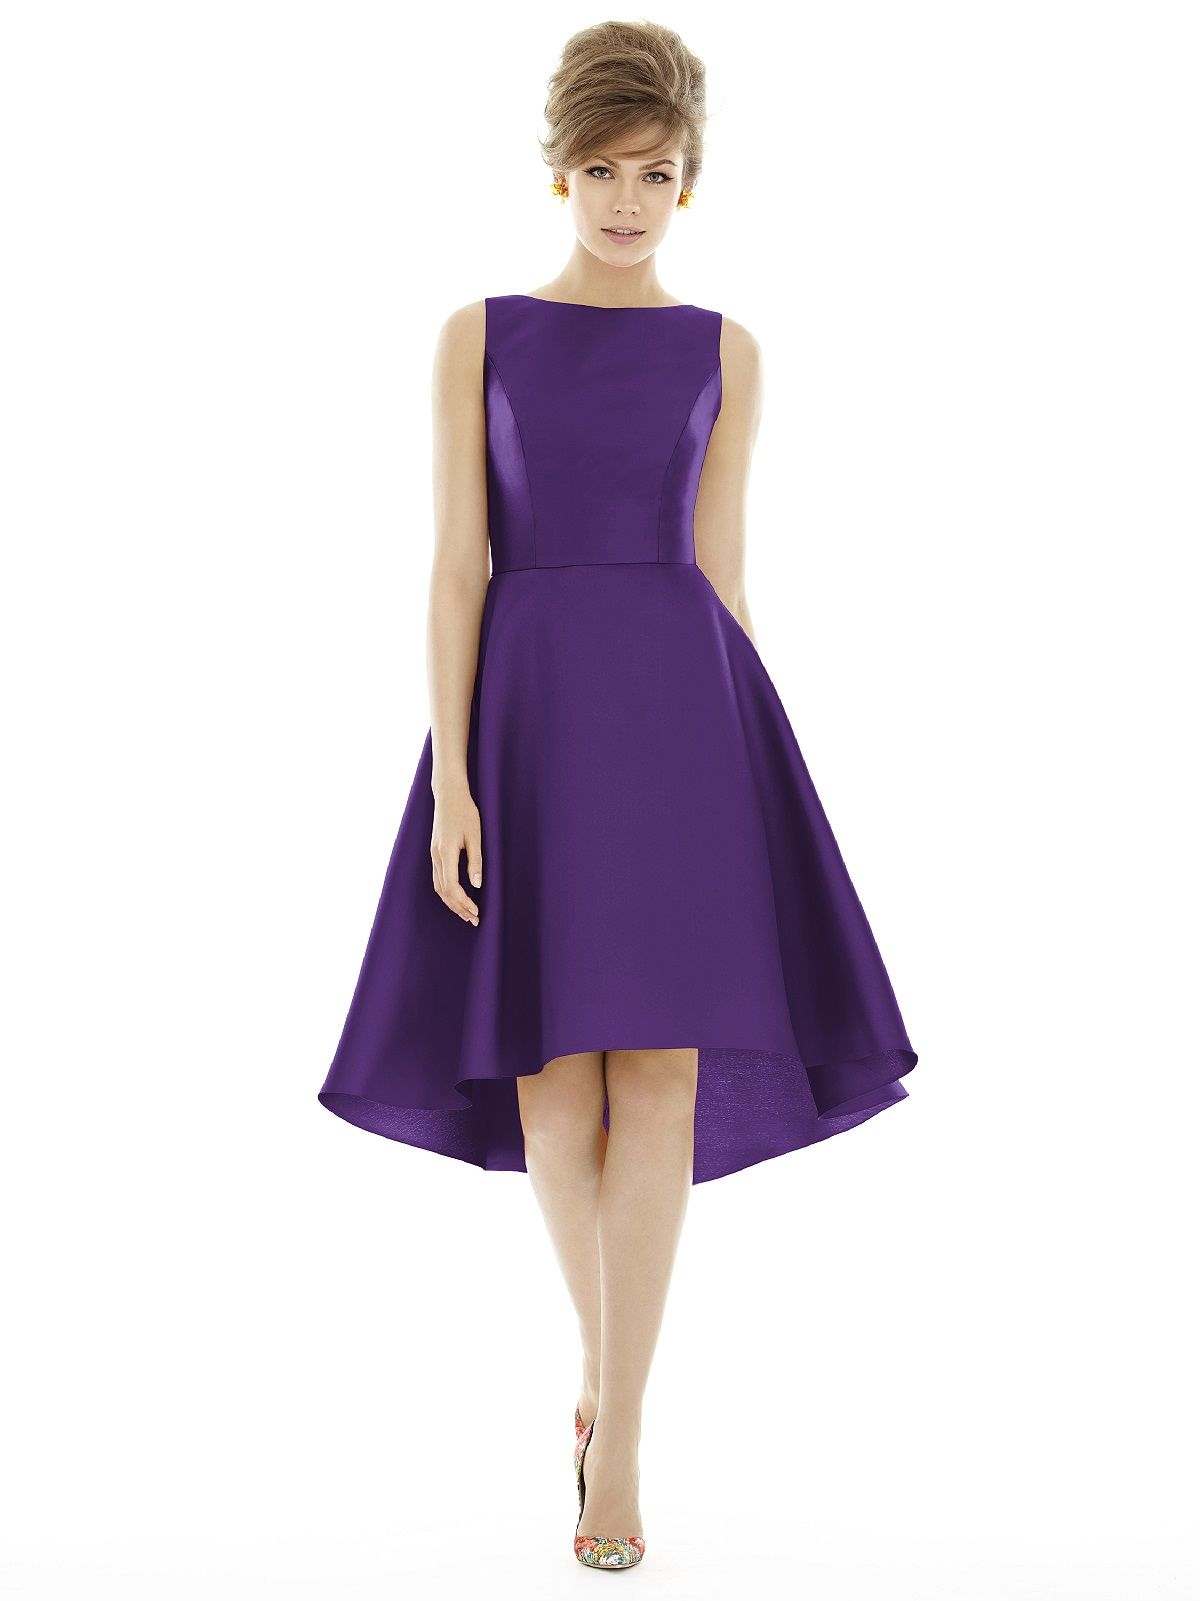 purple bridesmaid dress with no sleeves | Wedding ideas | Pinterest ...